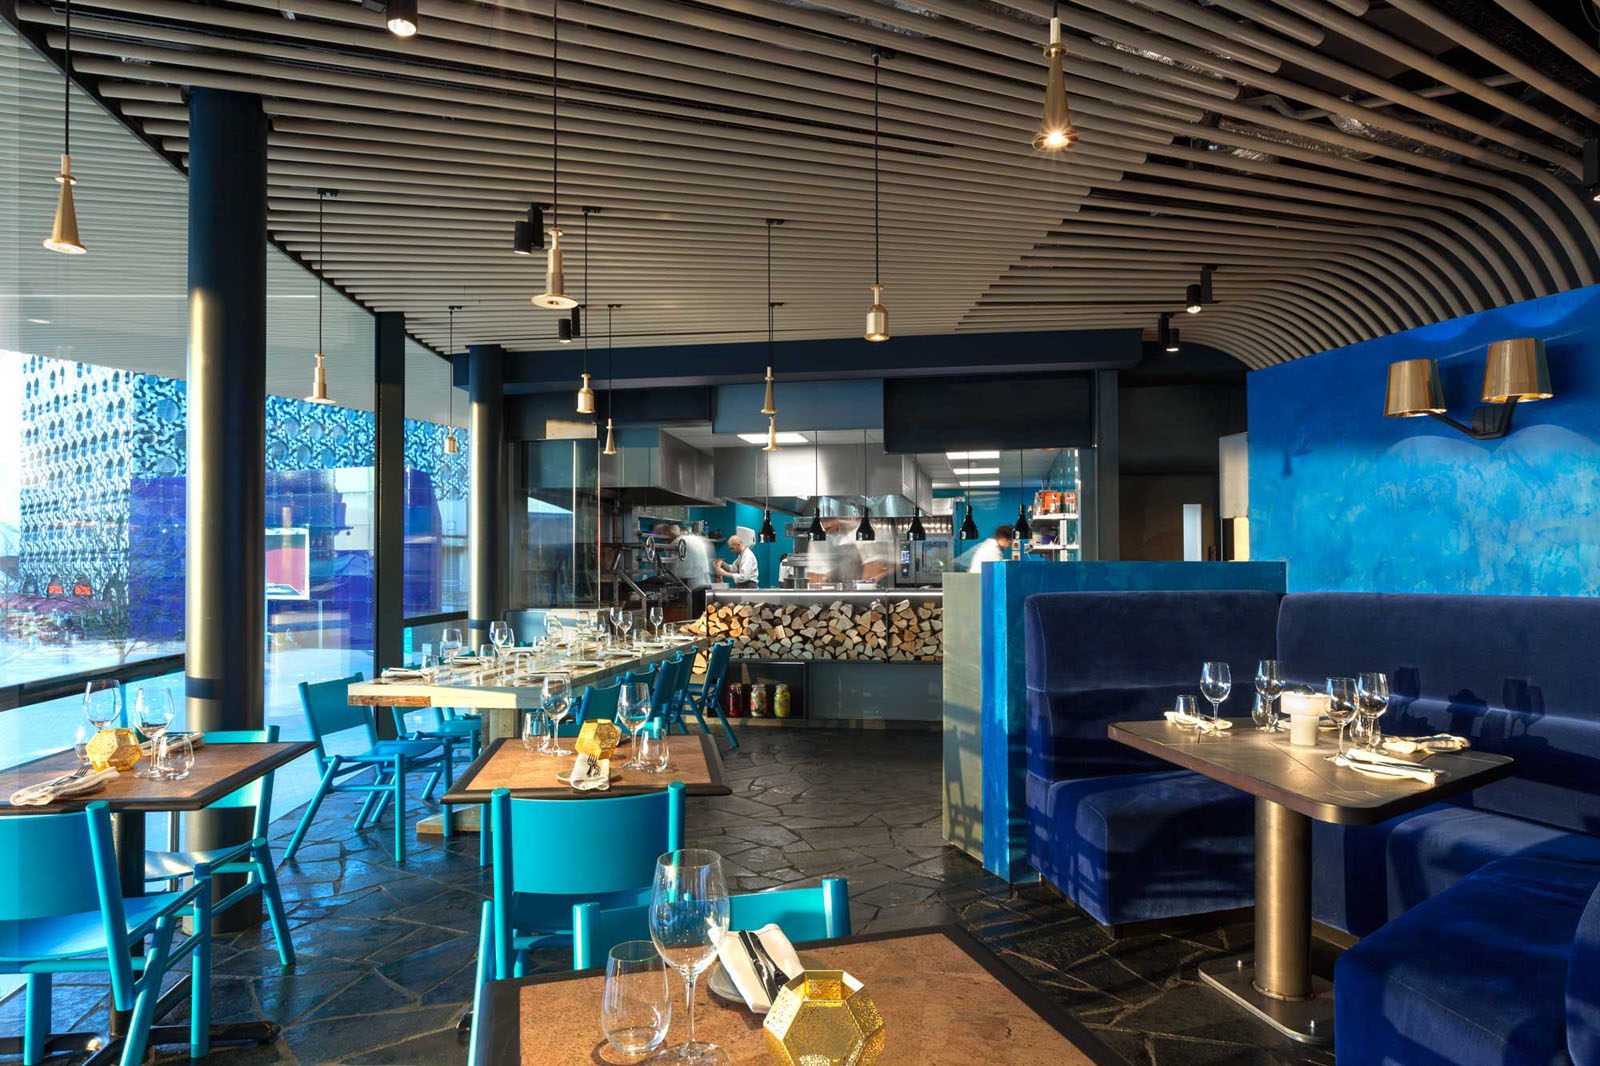 Contemporary Restaurant Interior Design